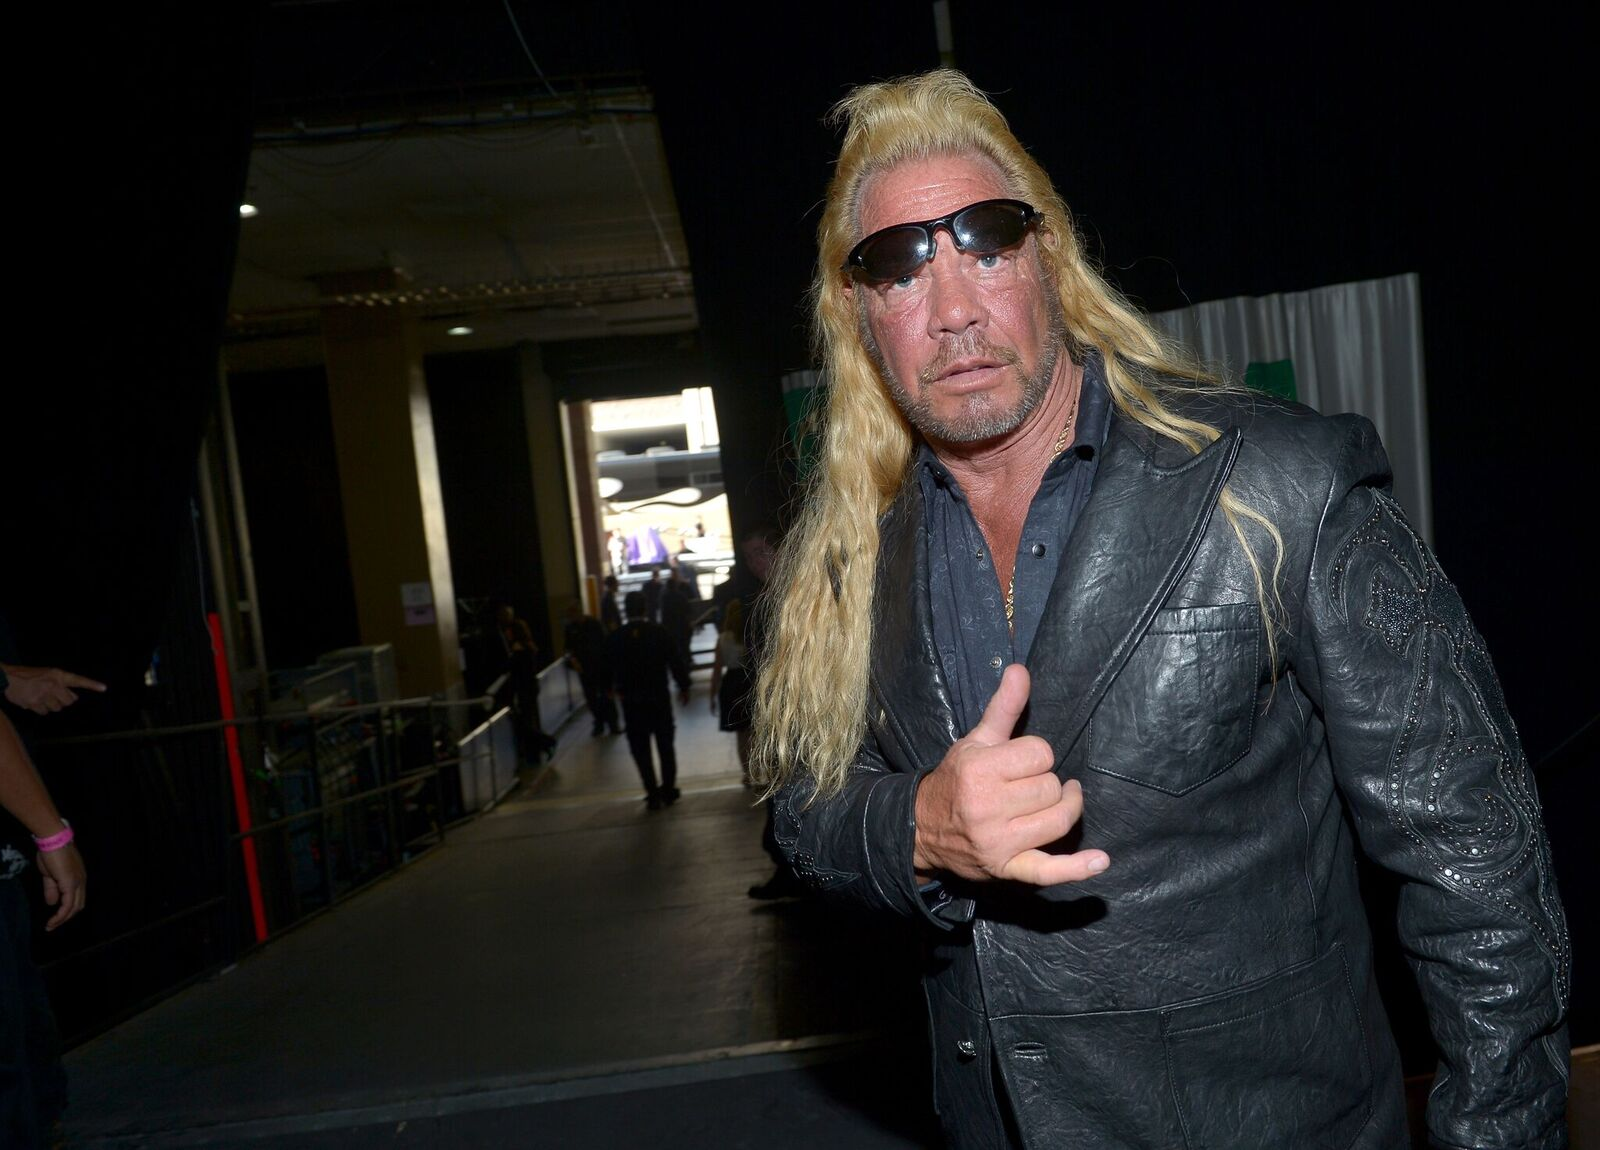 TV personality Dog the Bounty Hunter attends the 48th Annual Academy of Country Music Awards at the MGM Grand Garden Arena on April 7, 2013 | Photo: Getty Images